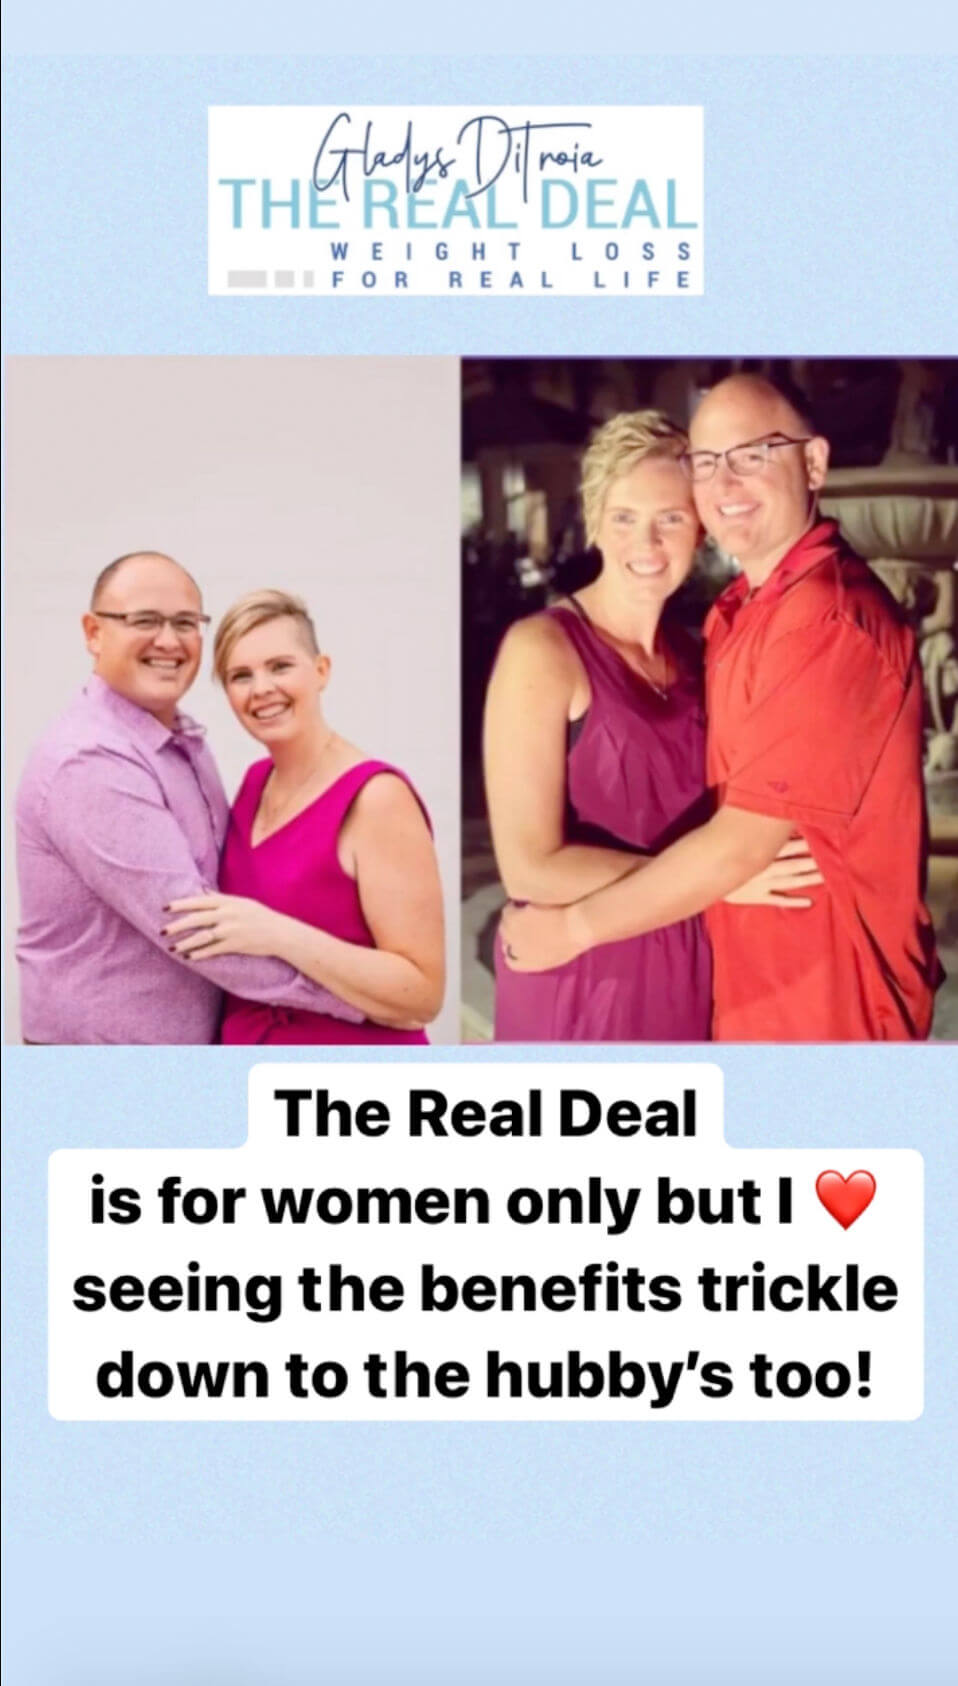 The Real Deal Weight Loss- Husbands Lose Too